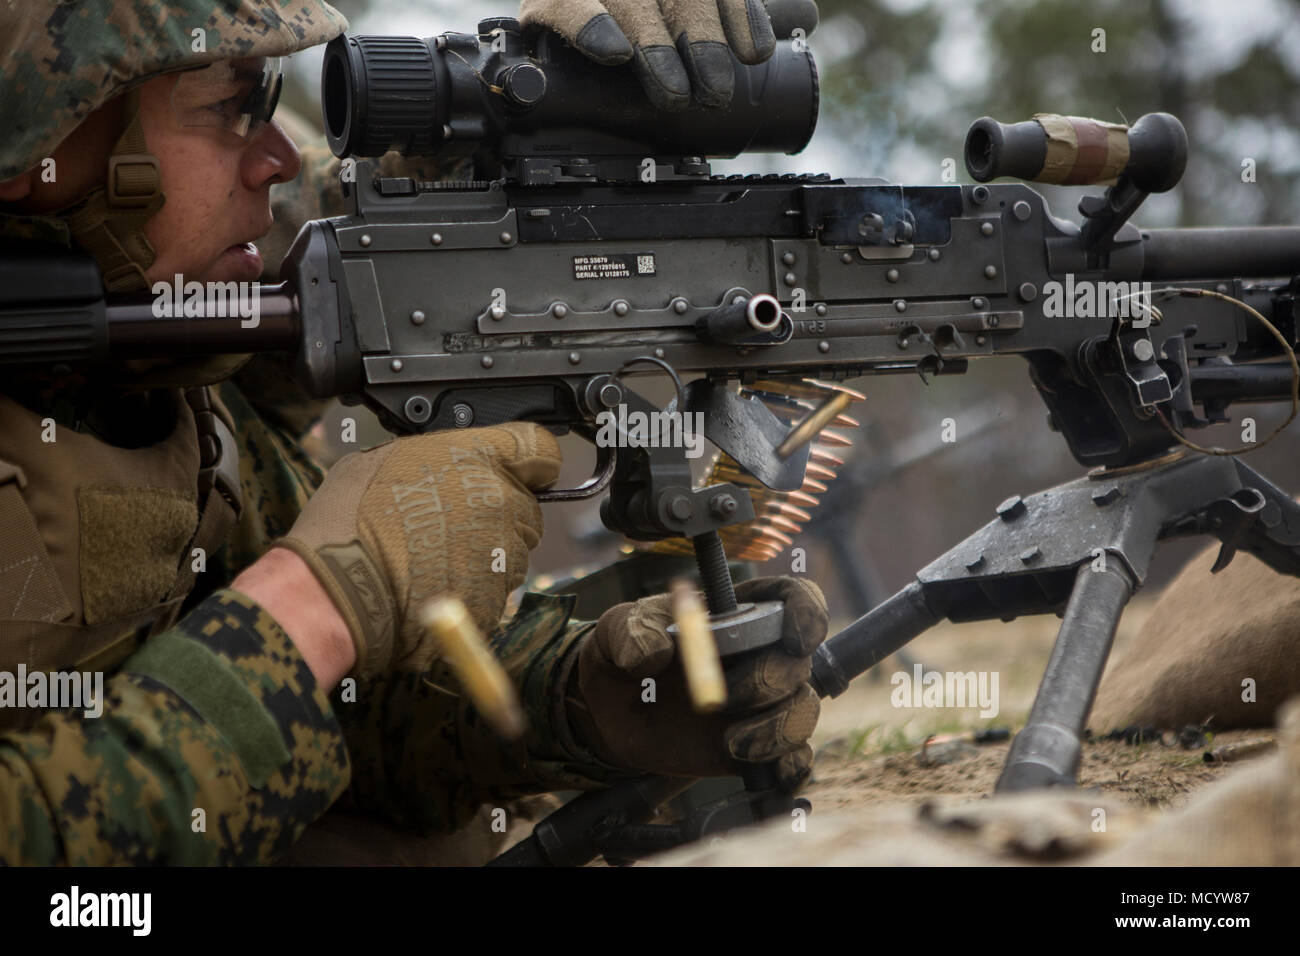 A U.S. Marine with Company L, 3rd Battalion, 2nd Marine Regiment, 2nd Marine Division, fires an M240B machine gun during a live fire platoon attack on the new G29 range on Camp Lejeune, N.C., on March 6, 2018. 2nd Marine Division provided funding and material for the creation of G29, then used 2nd Combat Engineer Battalion equipment and operators to finalize the production of the range. (U.S. Marine Corps photo by Pfc. Nathaniel Hamilton) - Stock Image